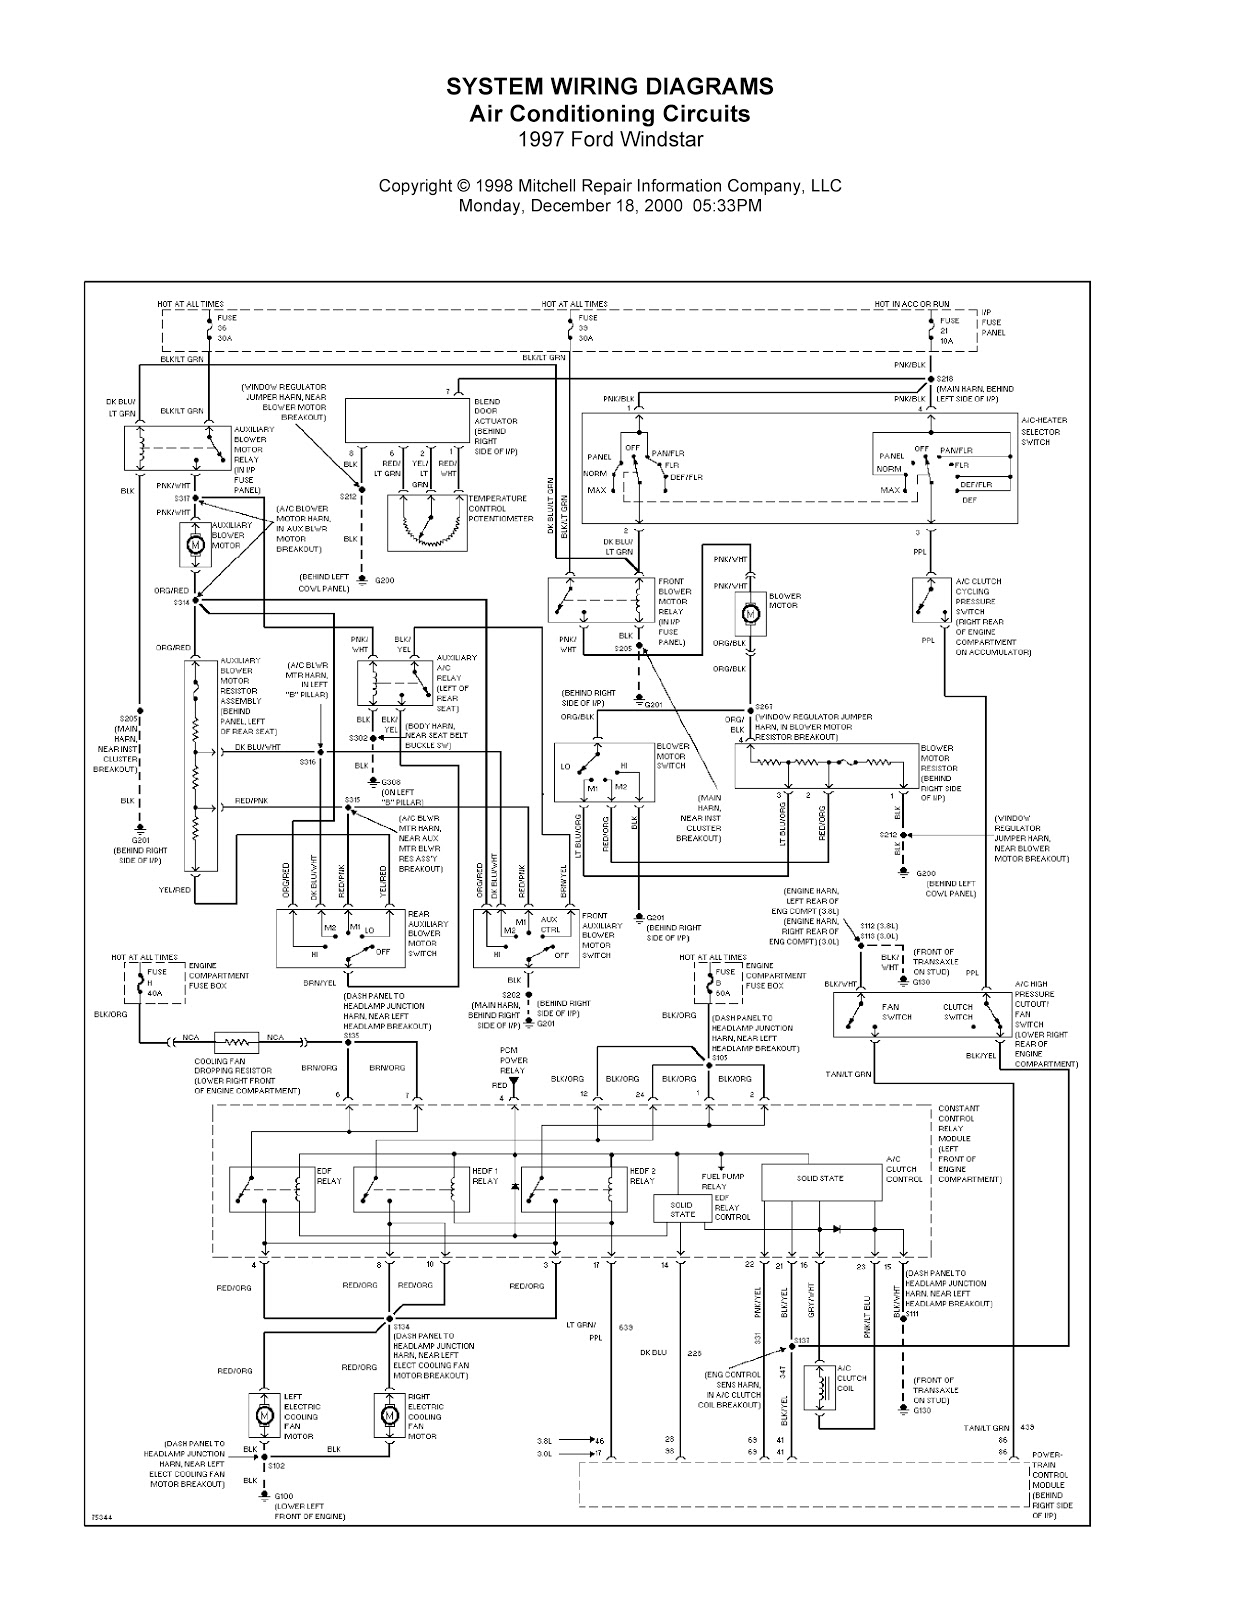 1997 ford wiring diagram wiring diagram rh blaknwyt co Mack Truck Wiring Diagram PDF 2006 Mack Truck Wiring Diagrams